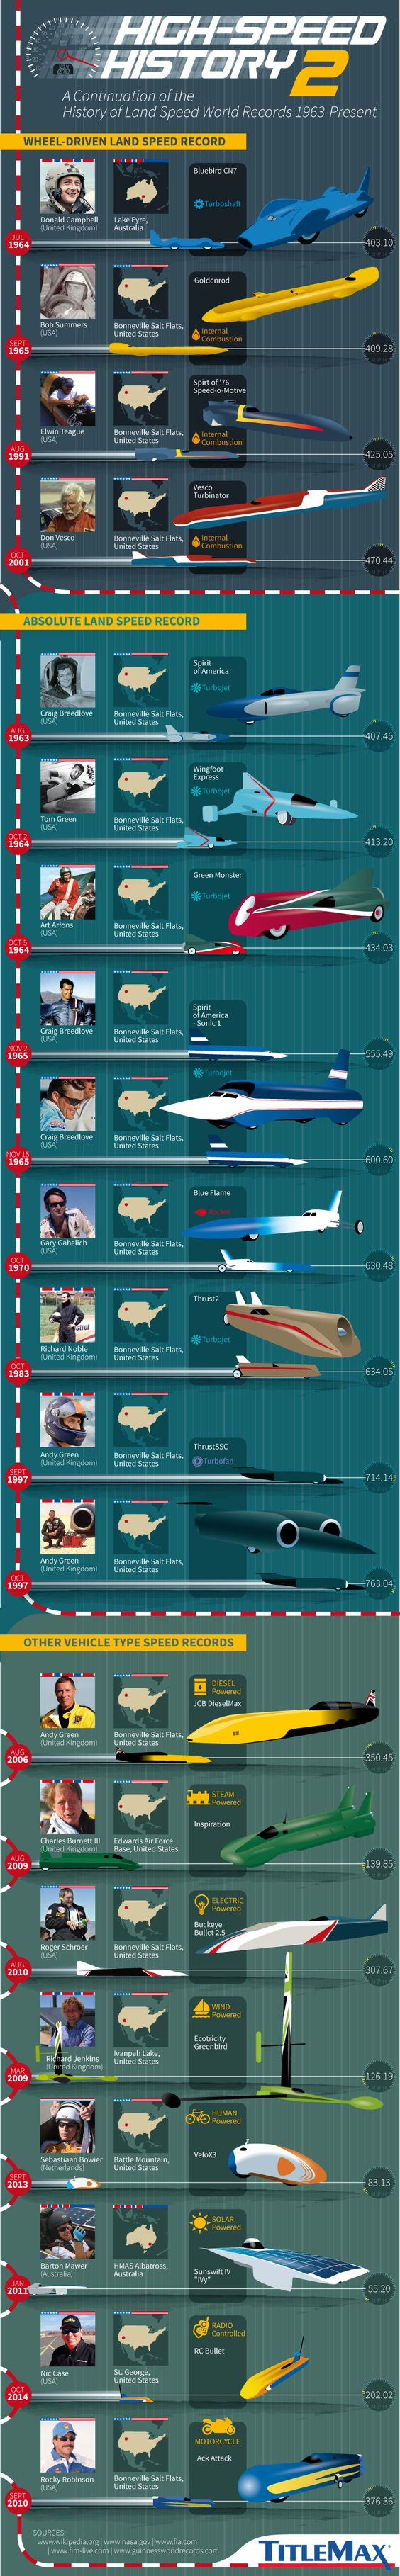 High-Speed History 2: Landspeed World Records from 1963-Present #infographic #History #Transportation: